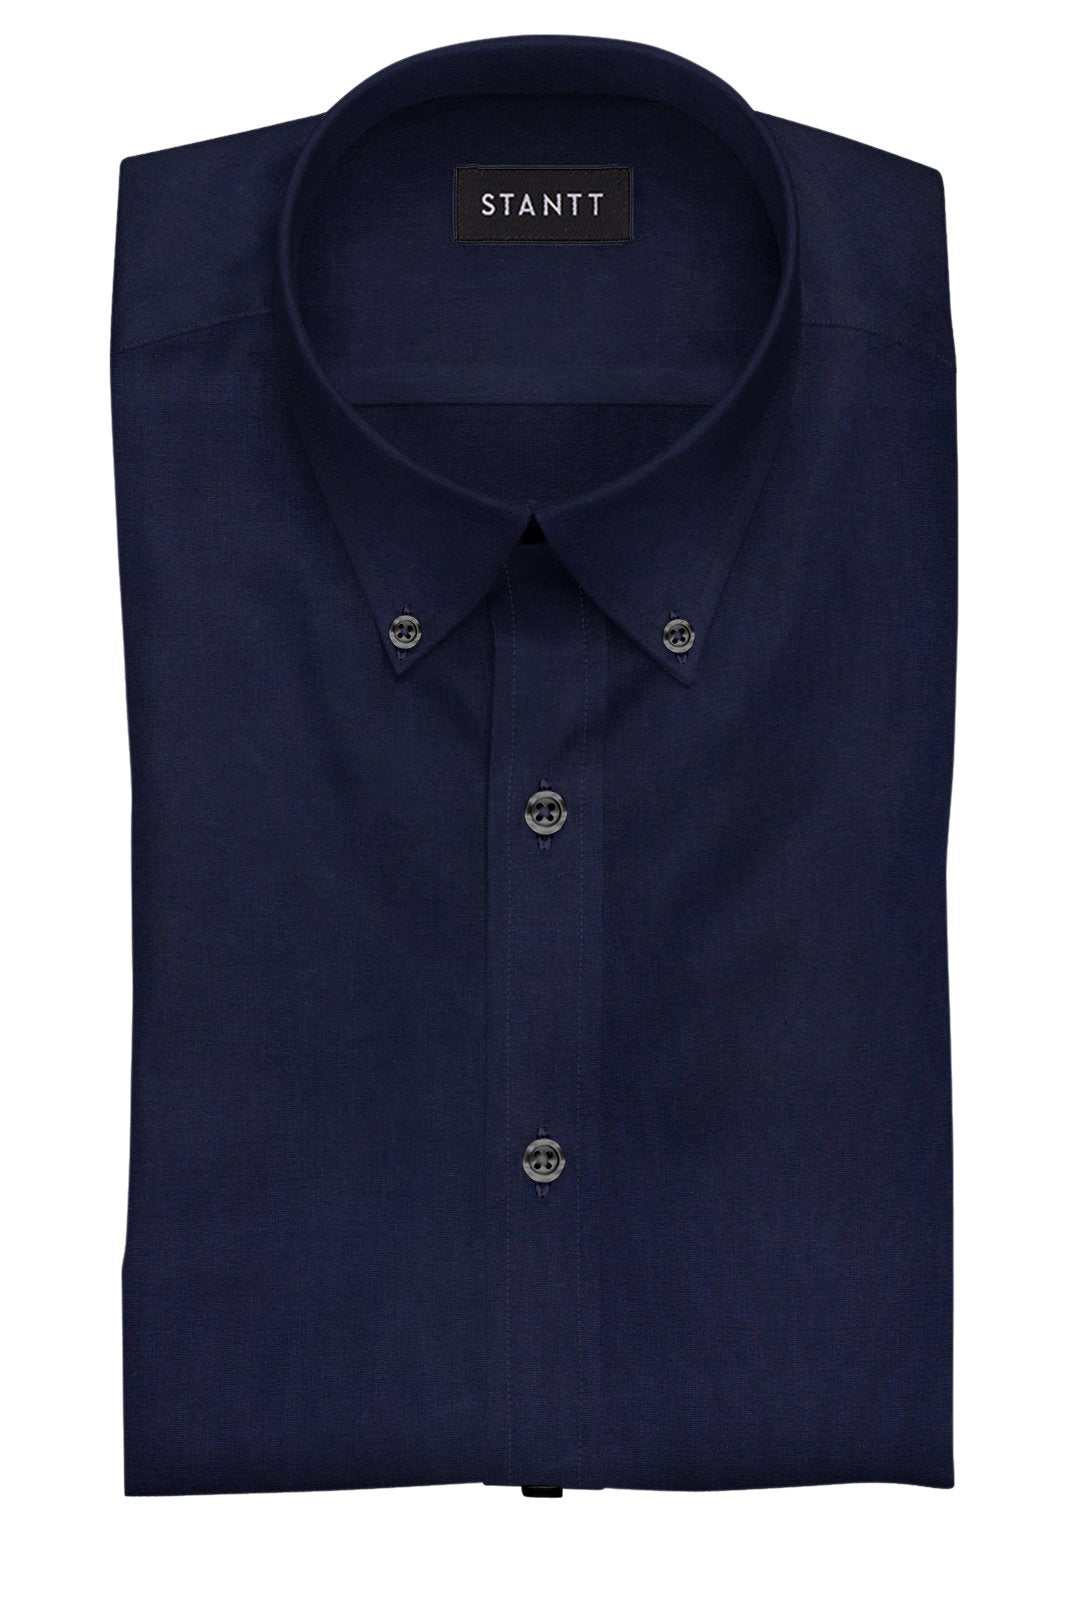 Navy End-on-End: Button-Down Collar, Barrel Cuff